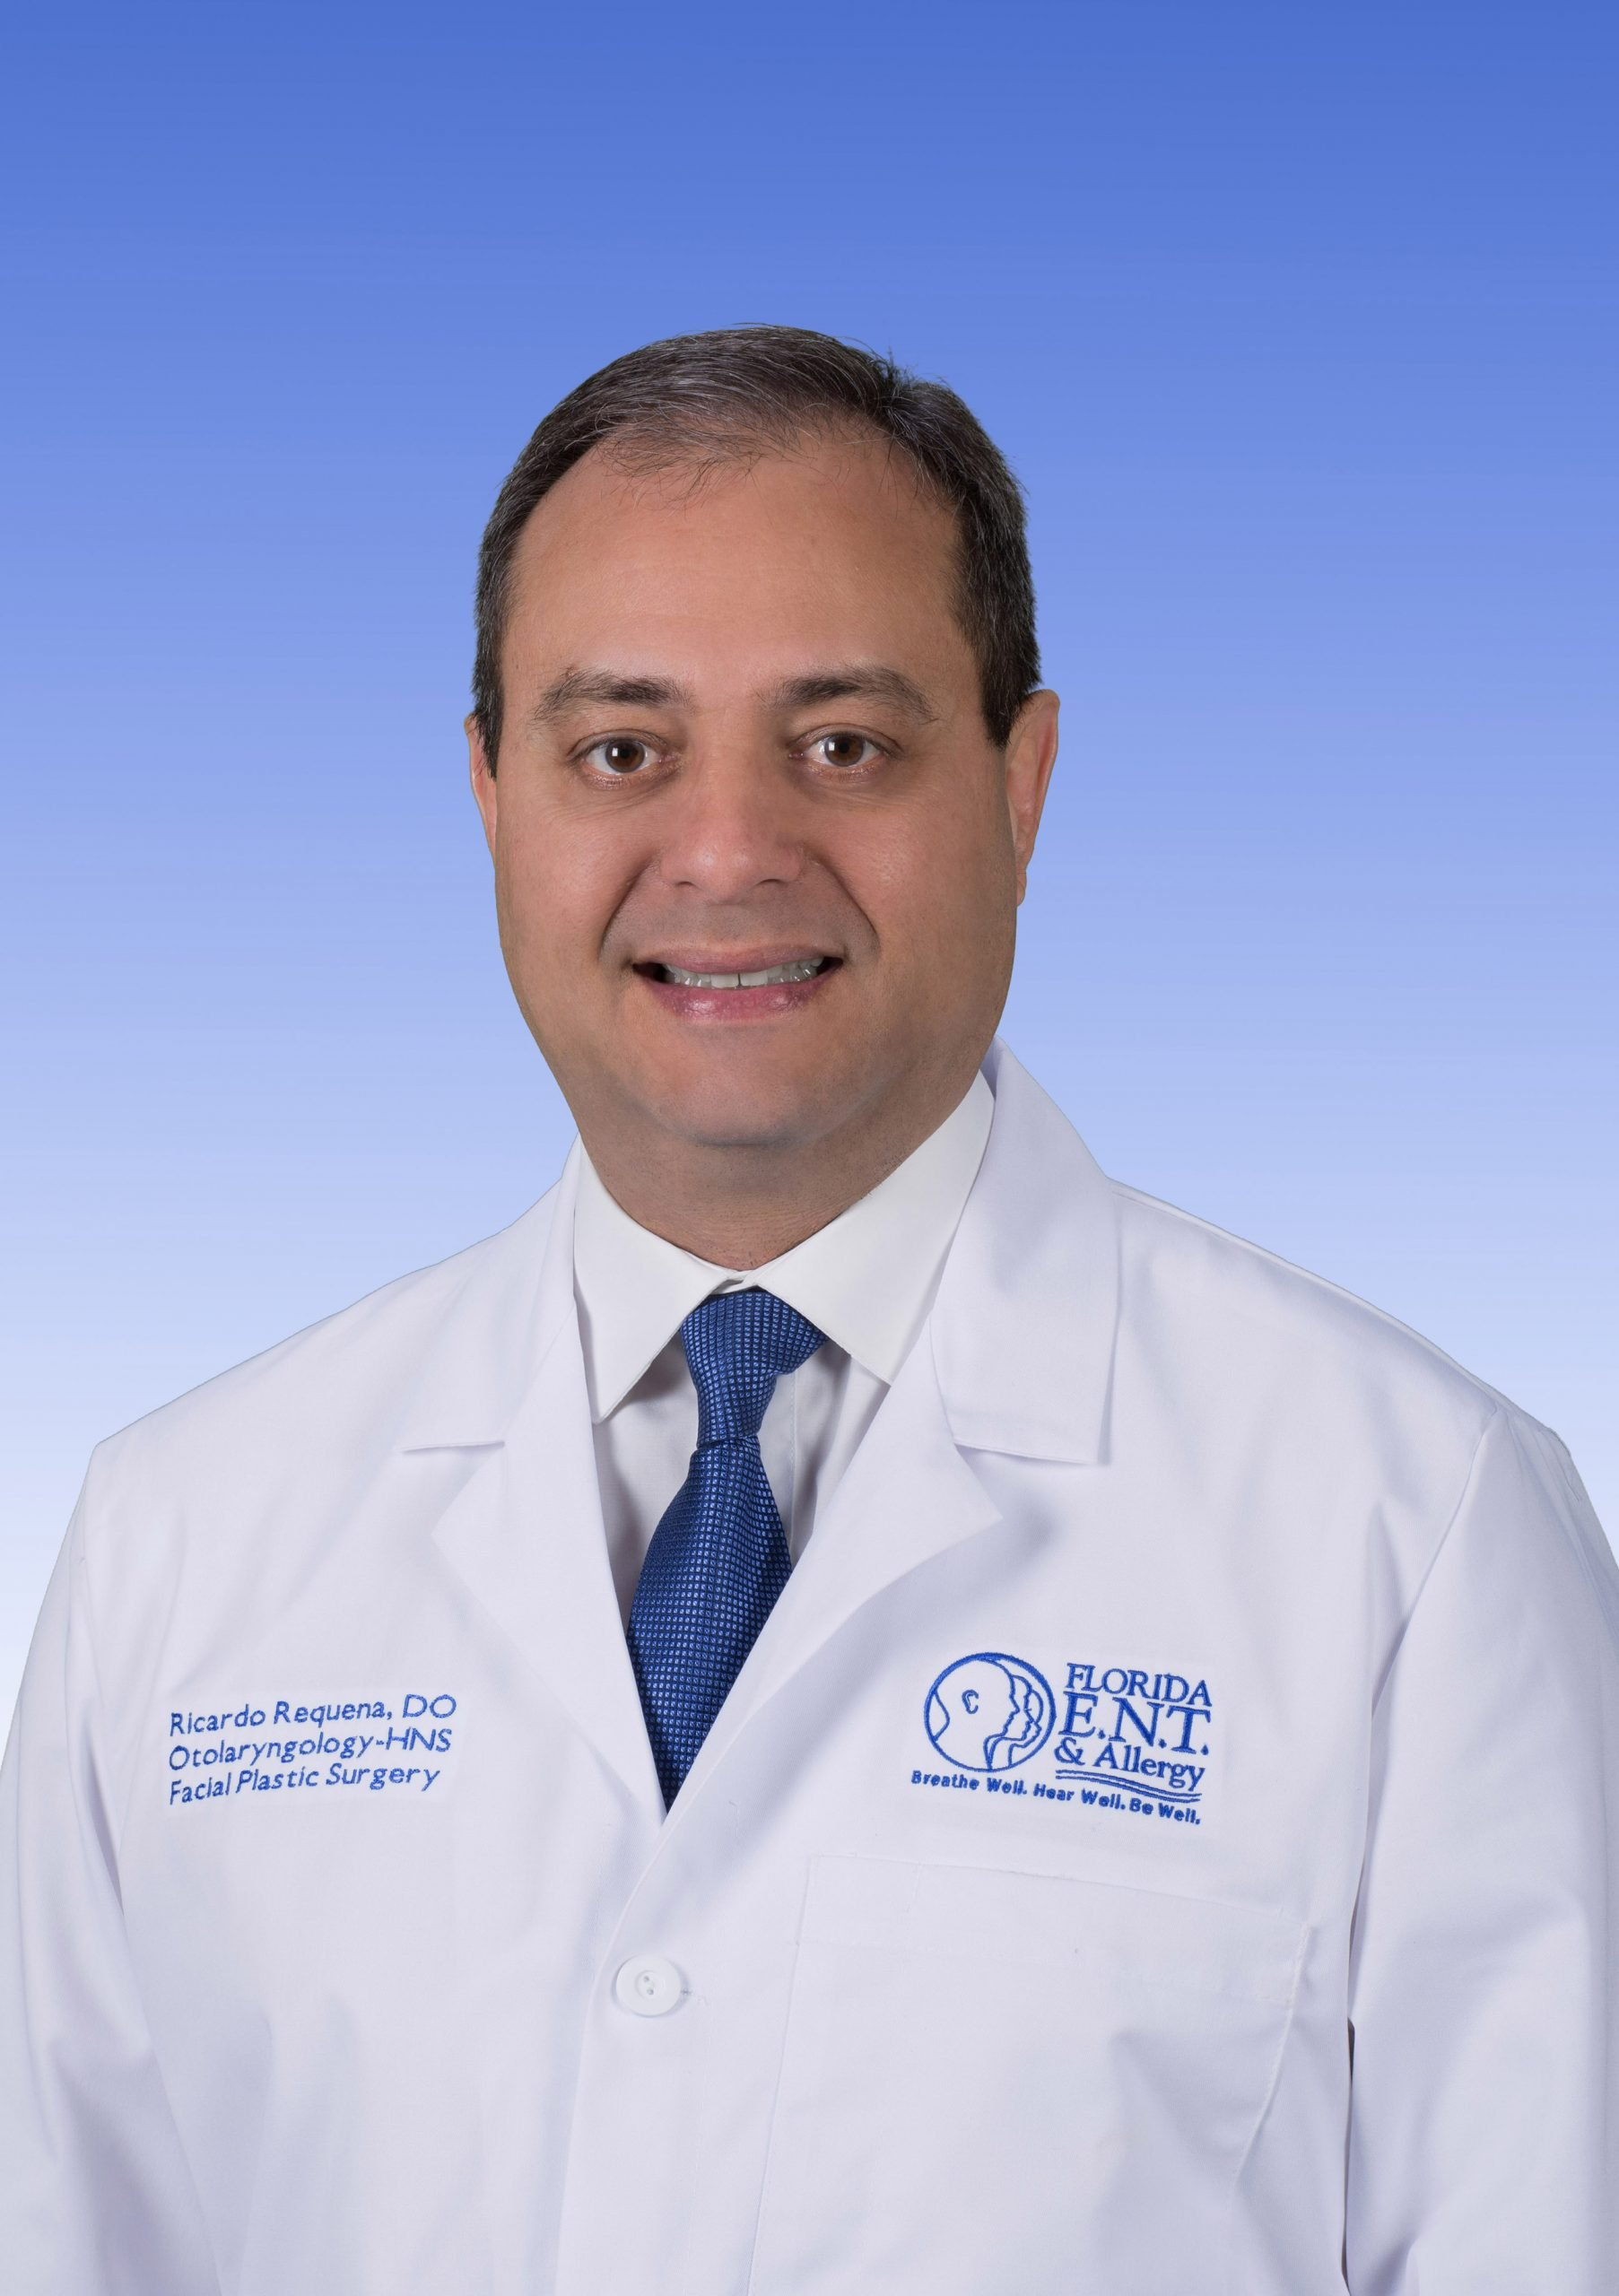 Dr. Requena